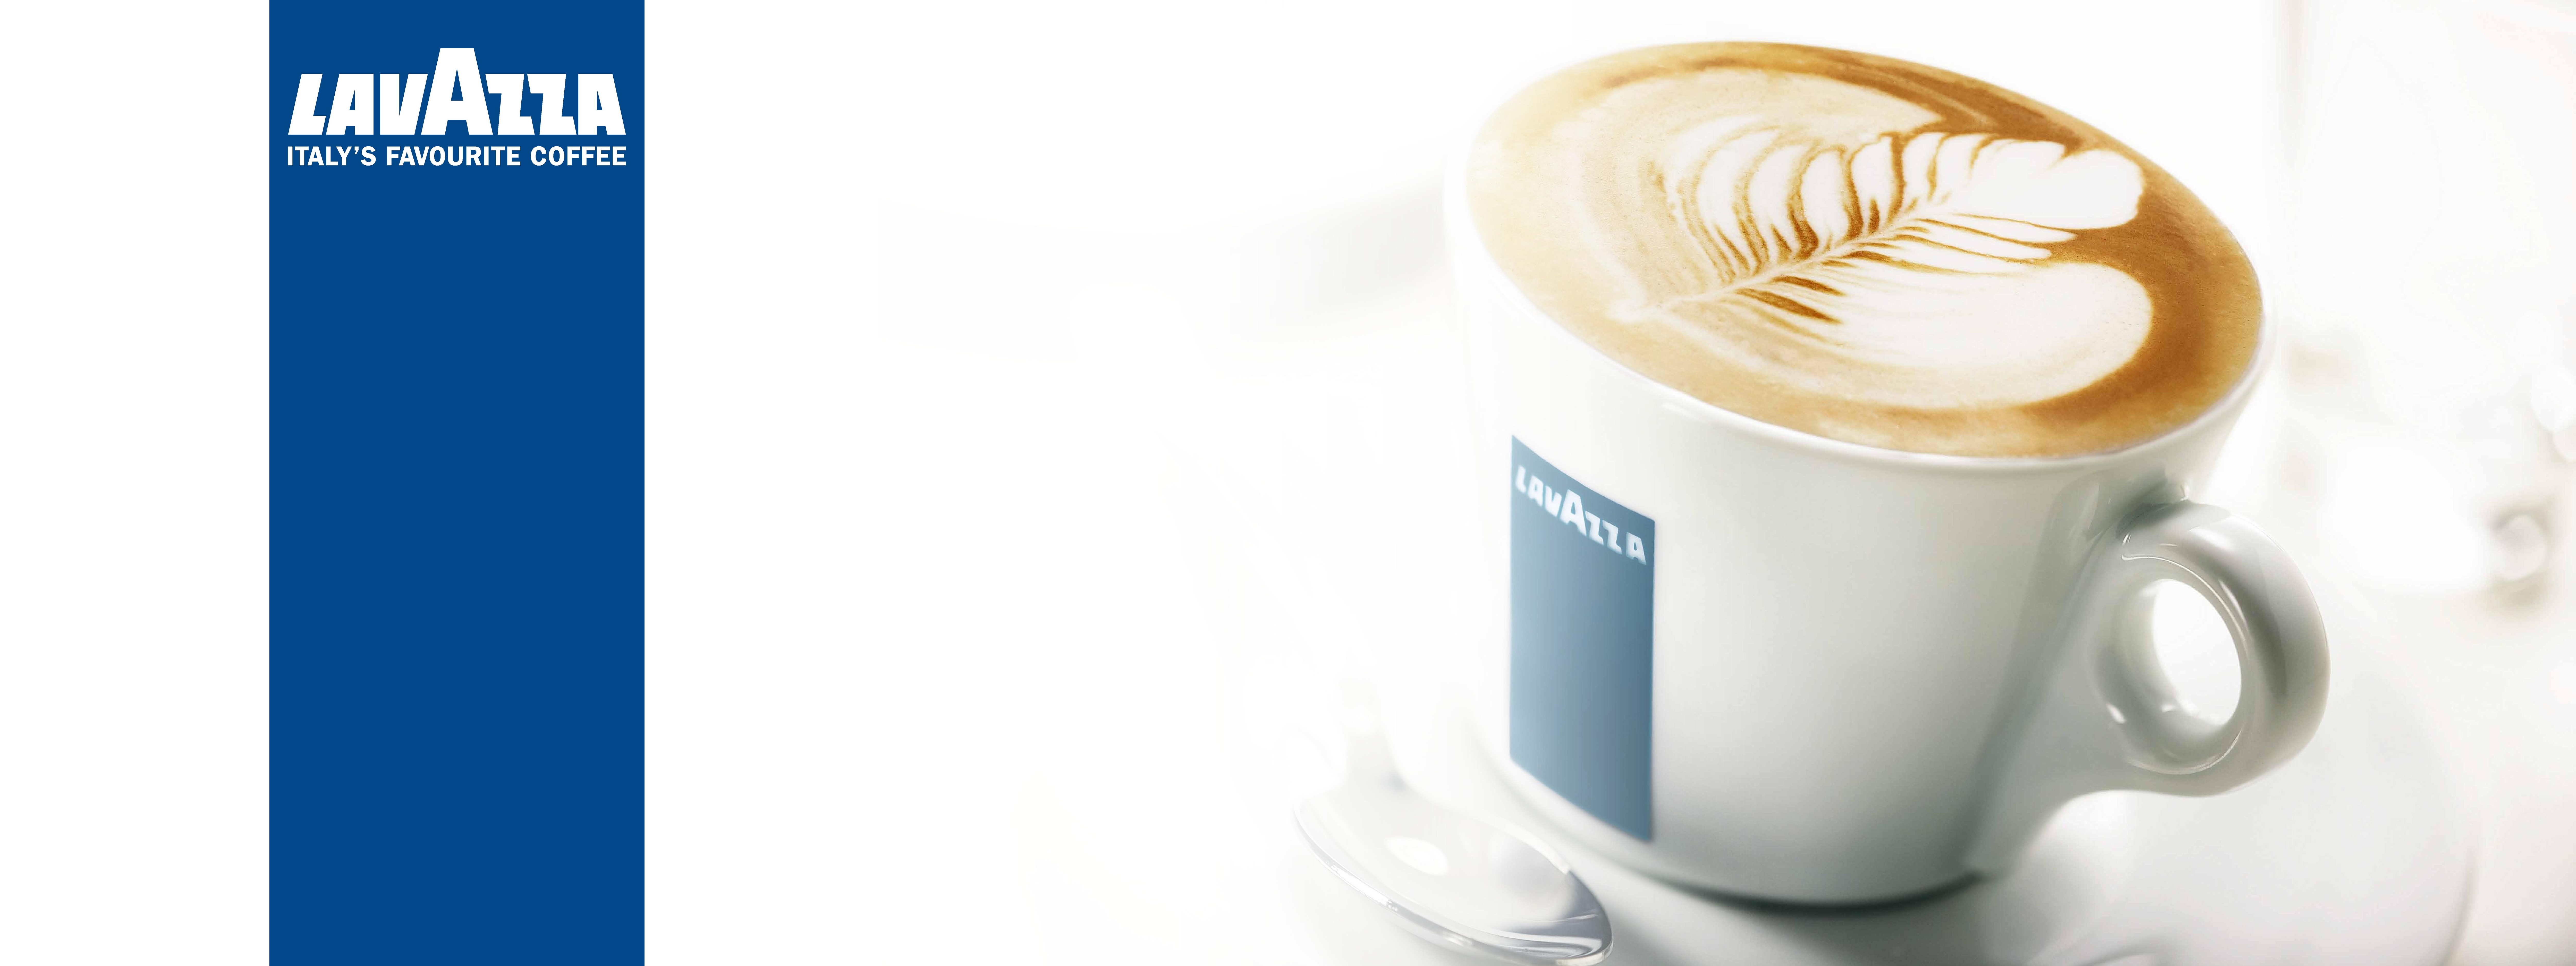 Lavazza cups and logo